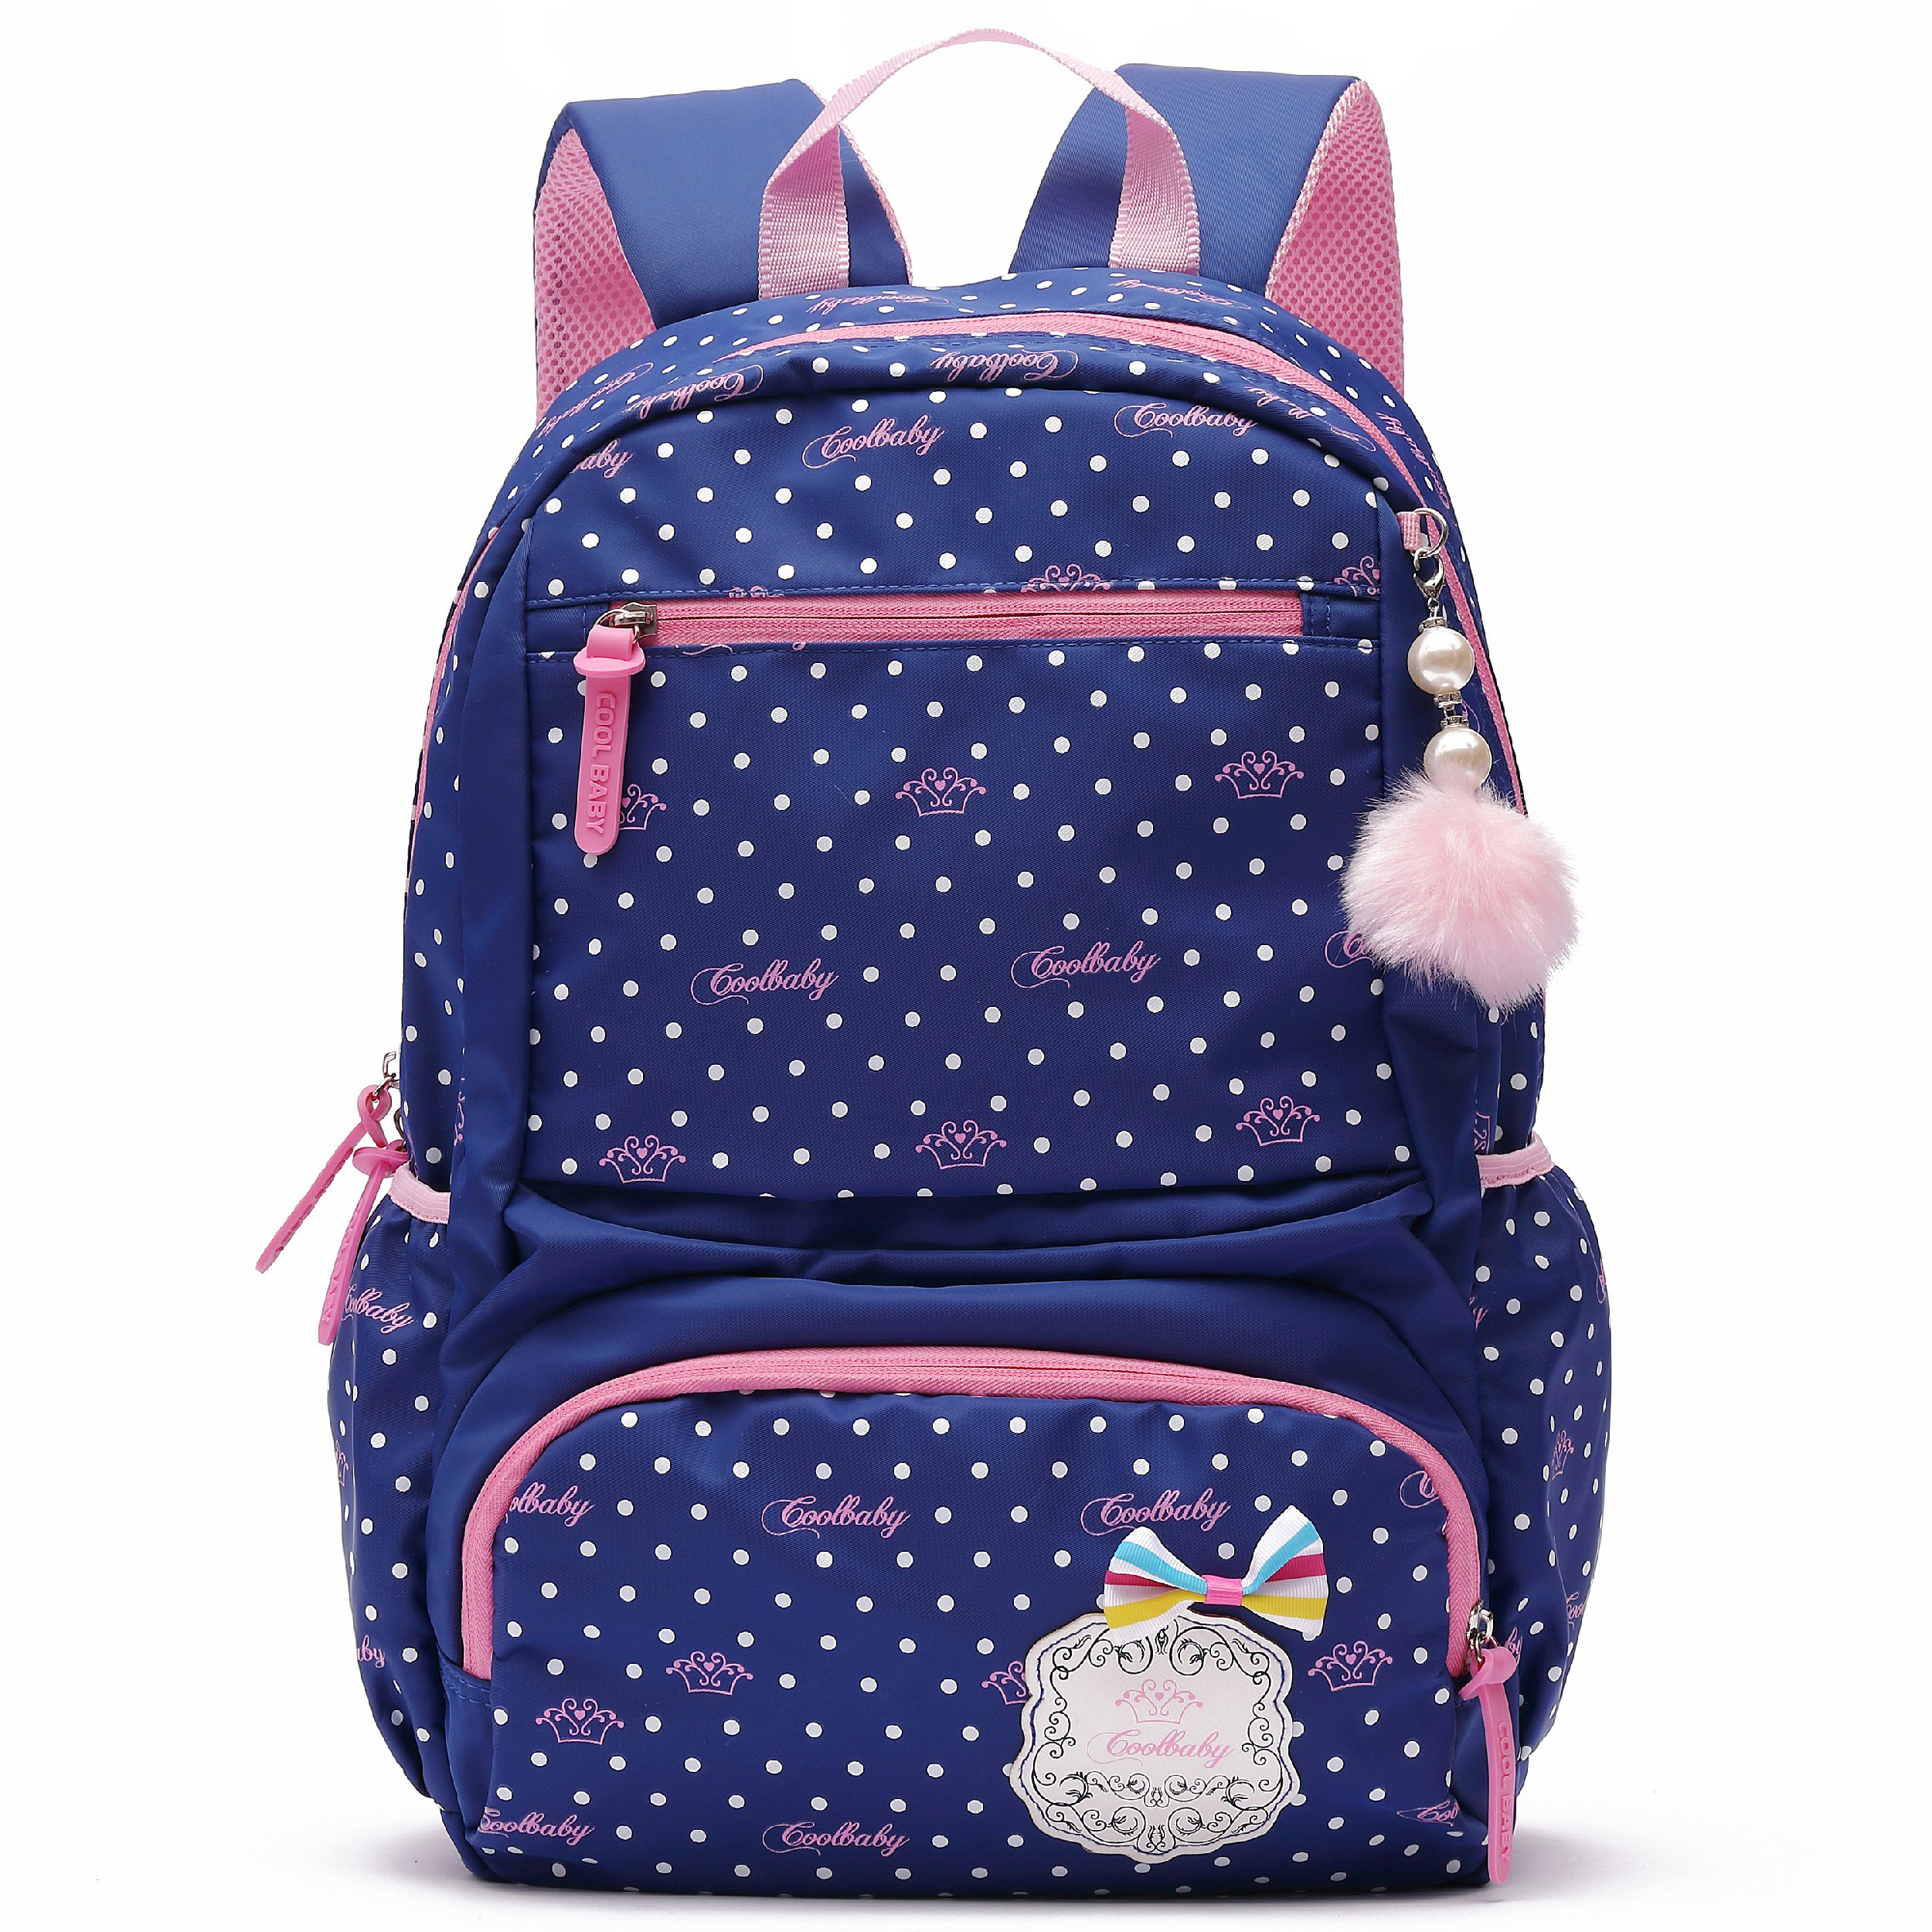 Ali Victory Waterproof Cute Backpack for Girls Large Kids Bookbag (Small, Navy Blue)